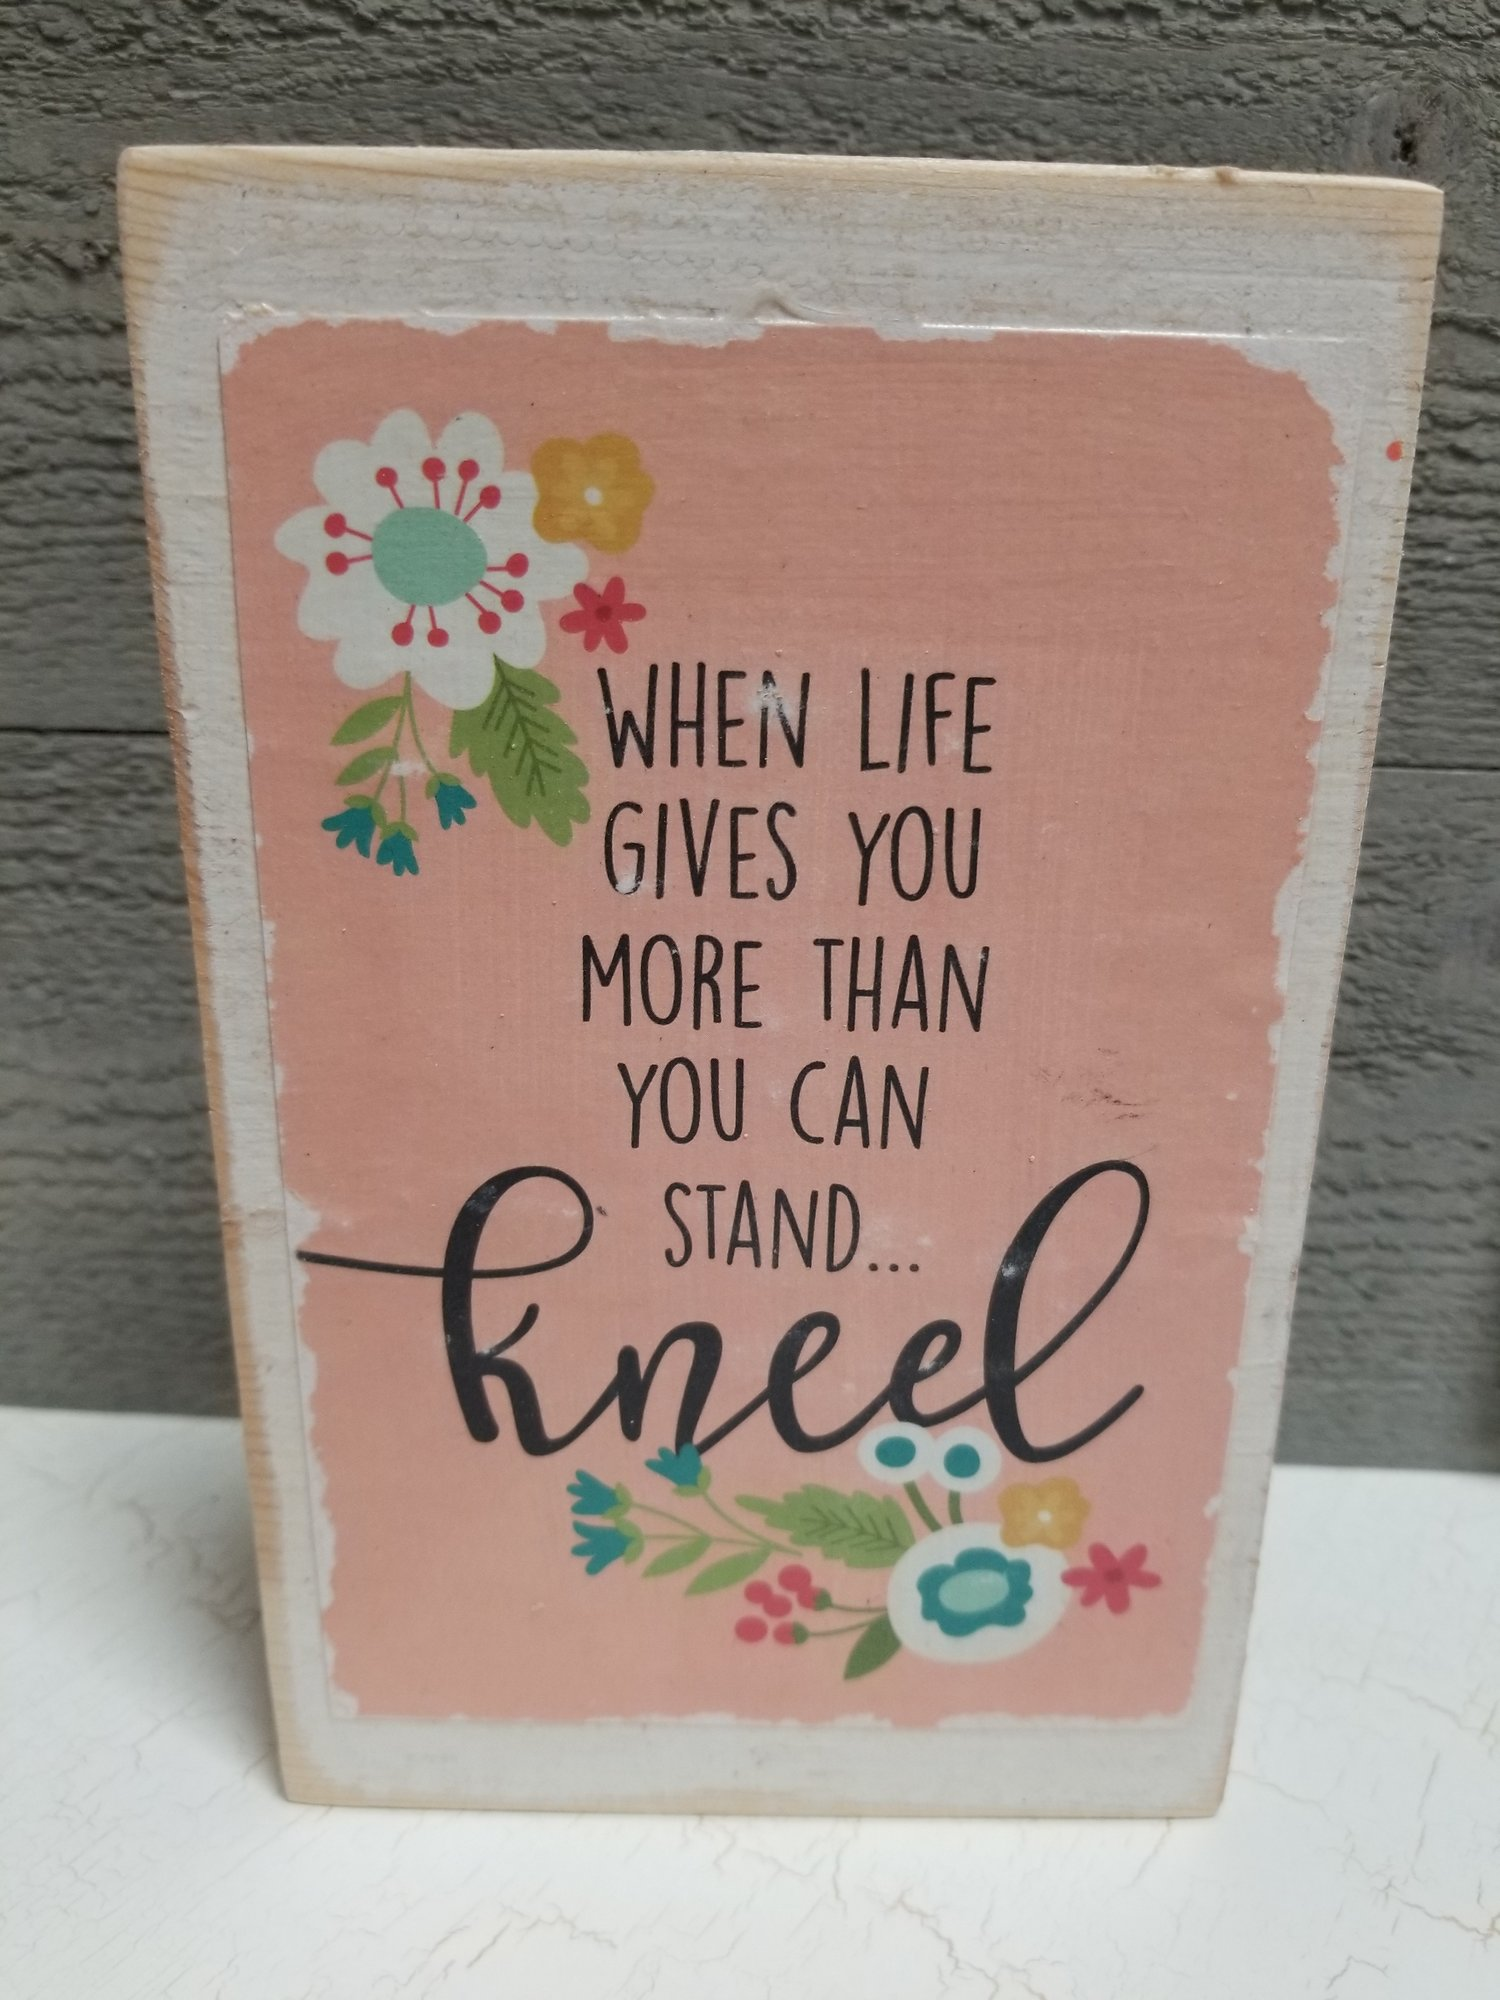 Kneel Shelf Sitter. 'When life gives you more than you can stand...kneel.'  4.5 x 7